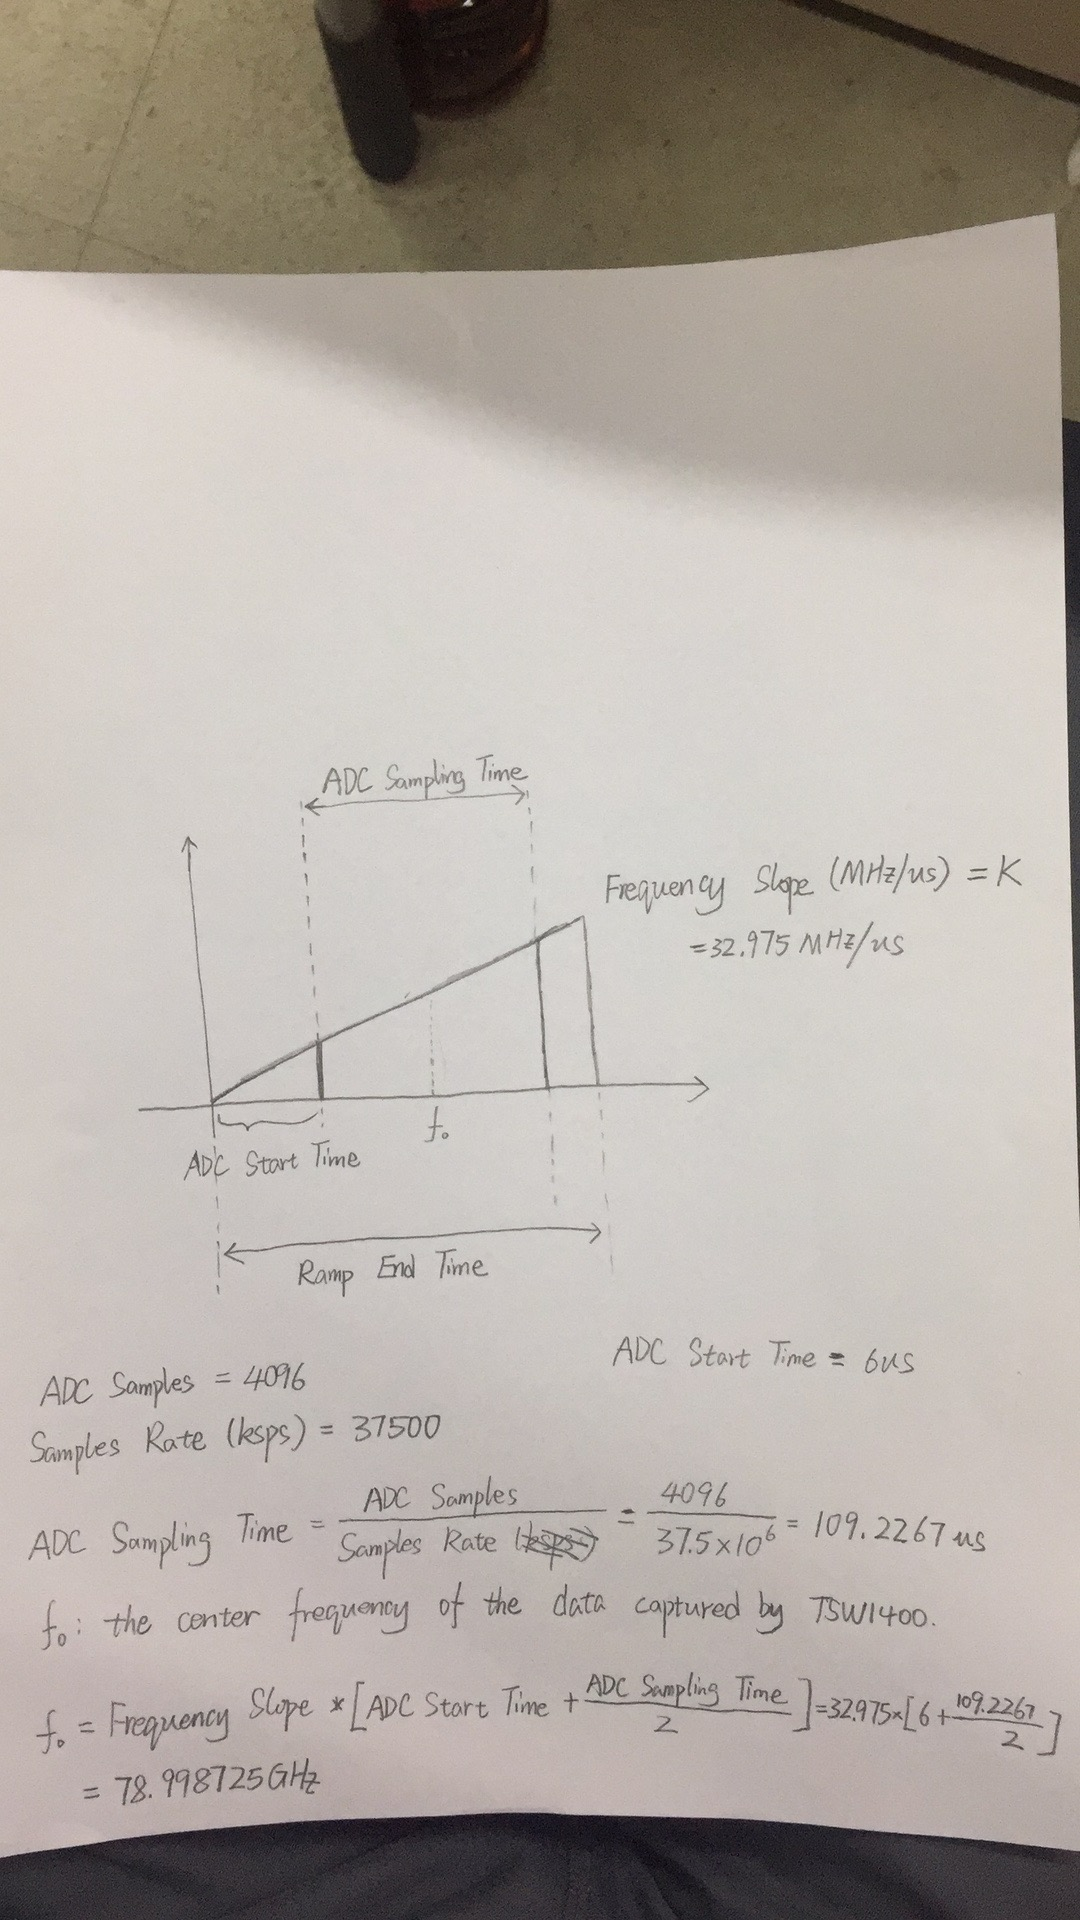 AWR1243: The center frequency of the ADC data captured by